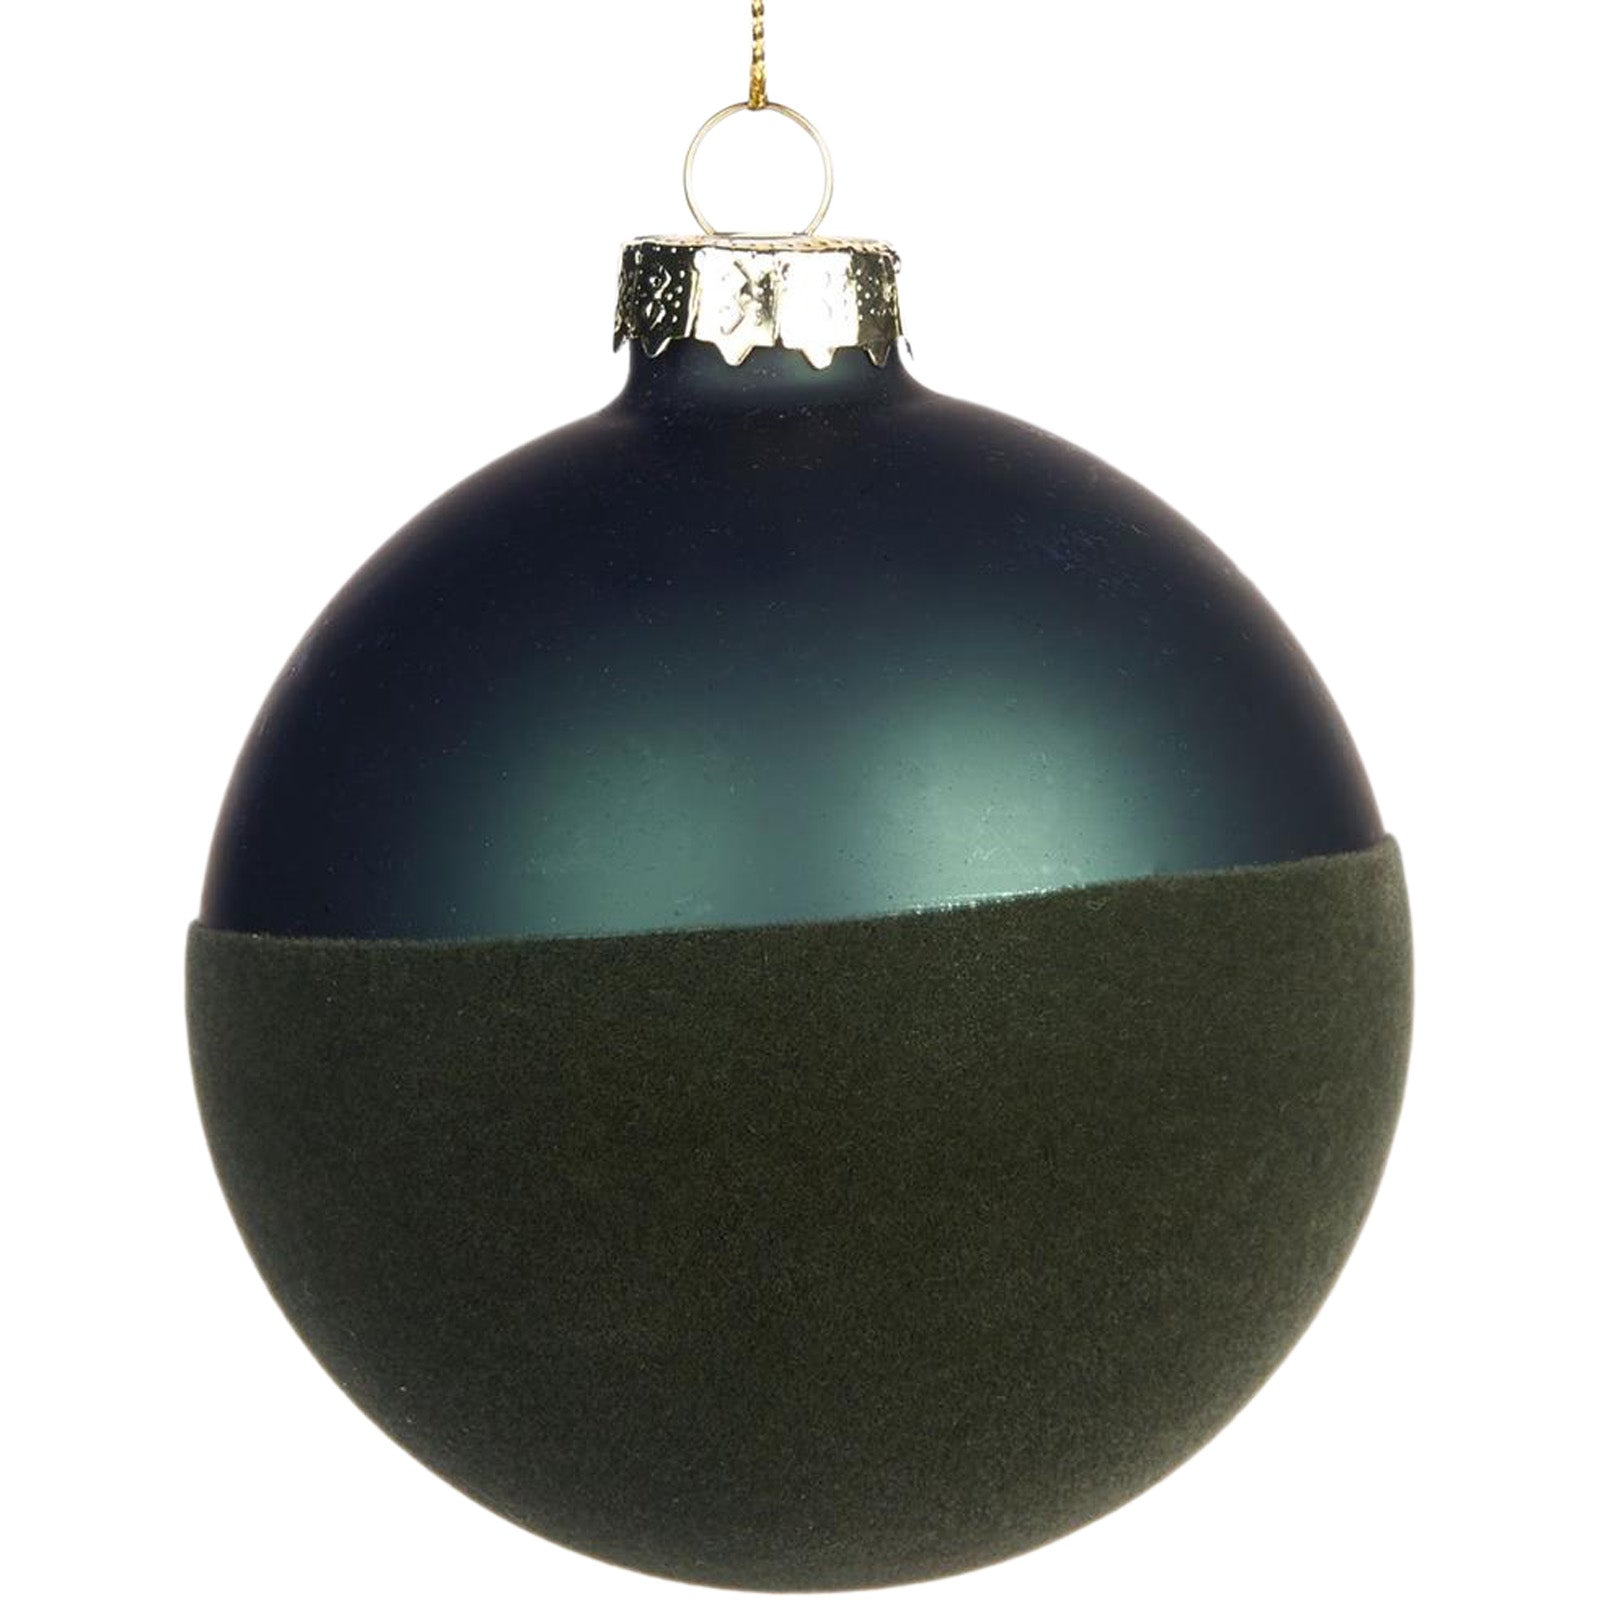 Half Matte Green Bauble by LuxDeco - Christmas tree decoration ornament - LuxDeco.com